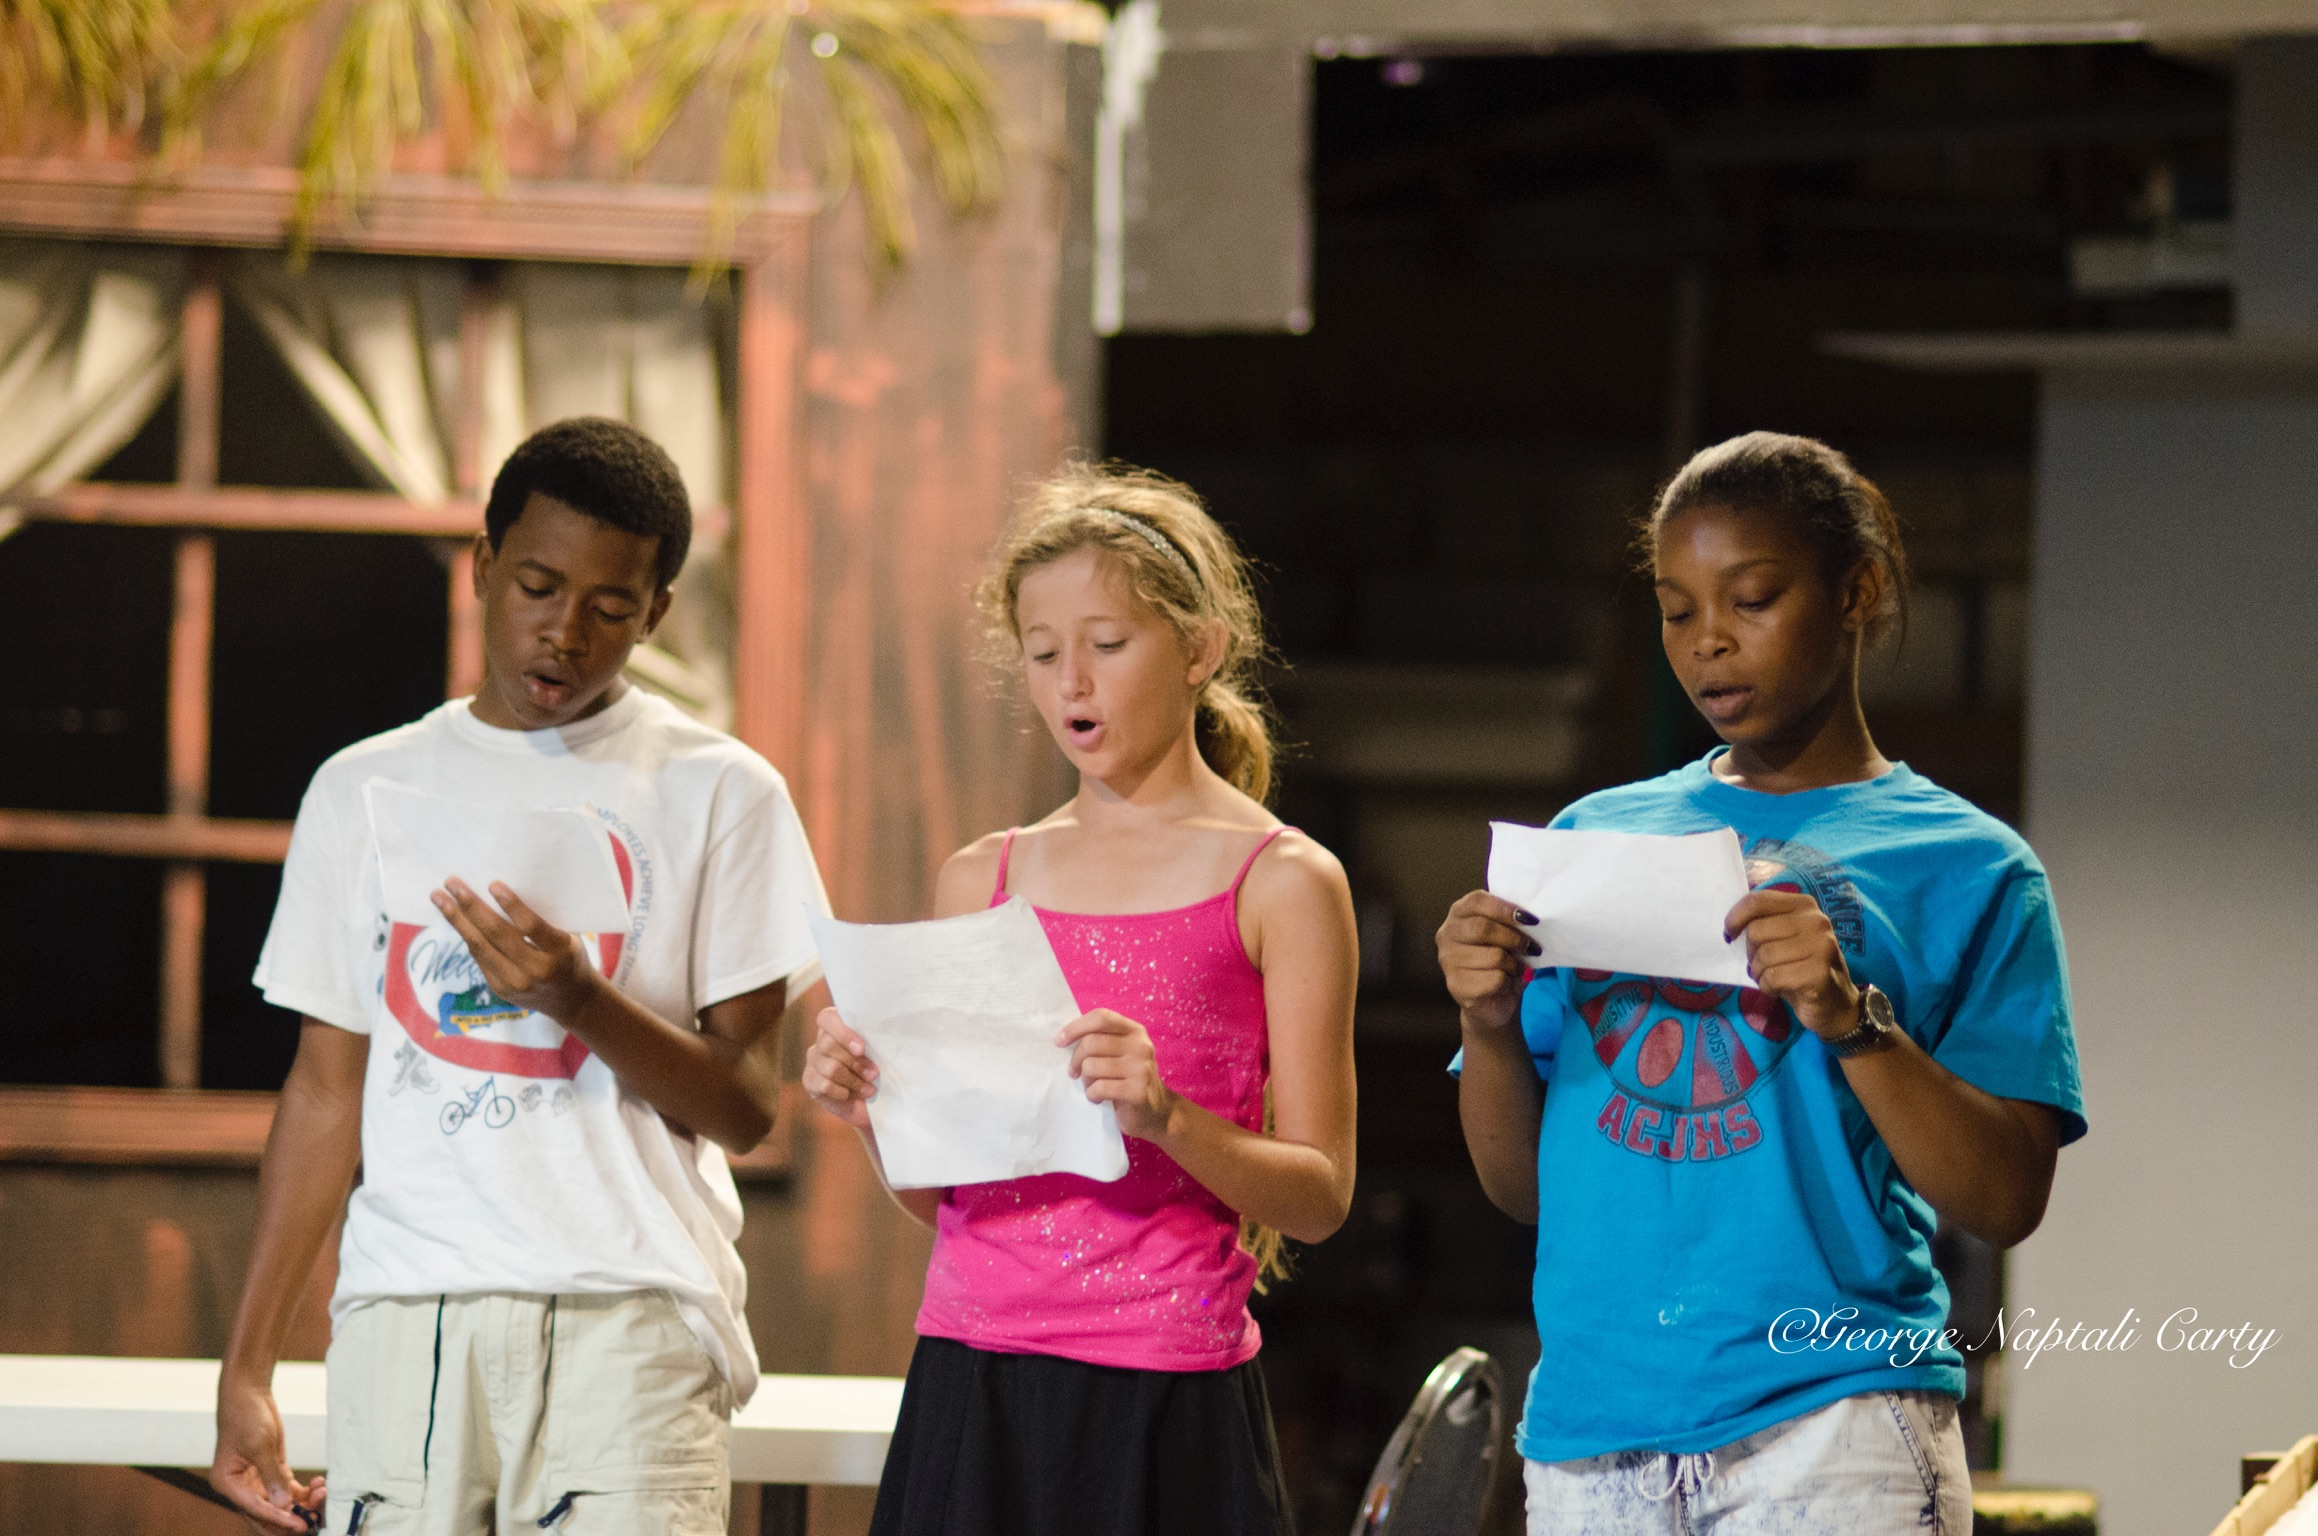 Students in this year's Leadership Camp learn about playwriting, acting, directing, set design, producing, and much more!